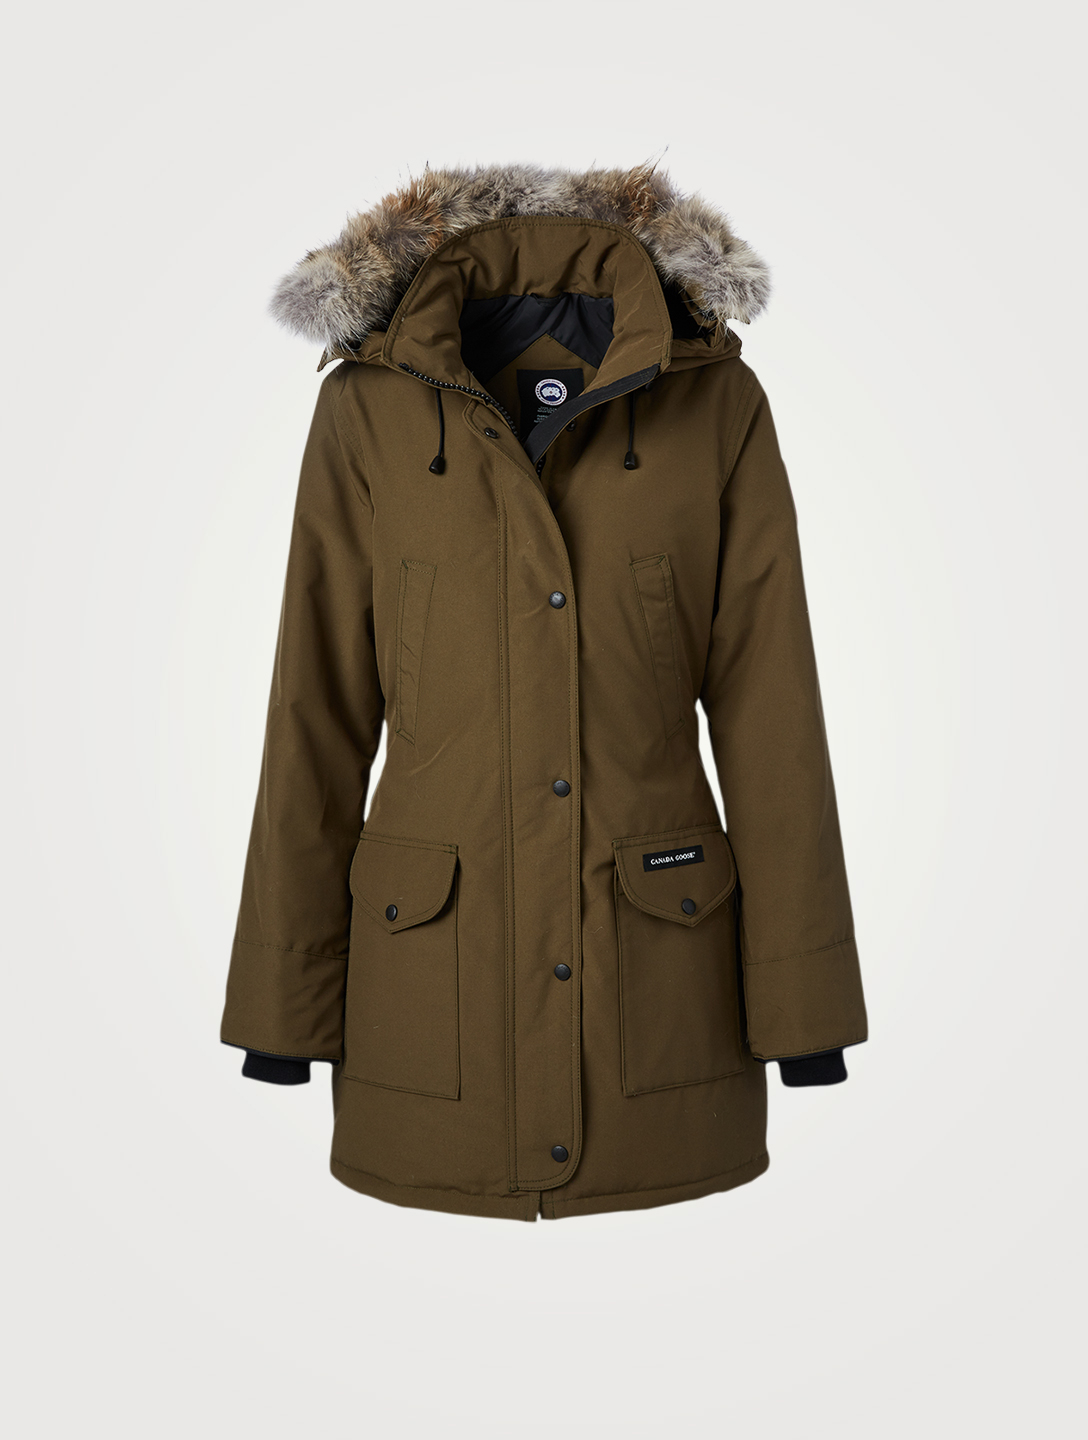 CANADA GOOSE Trillium Down Parka With Fur Hood Women's Green